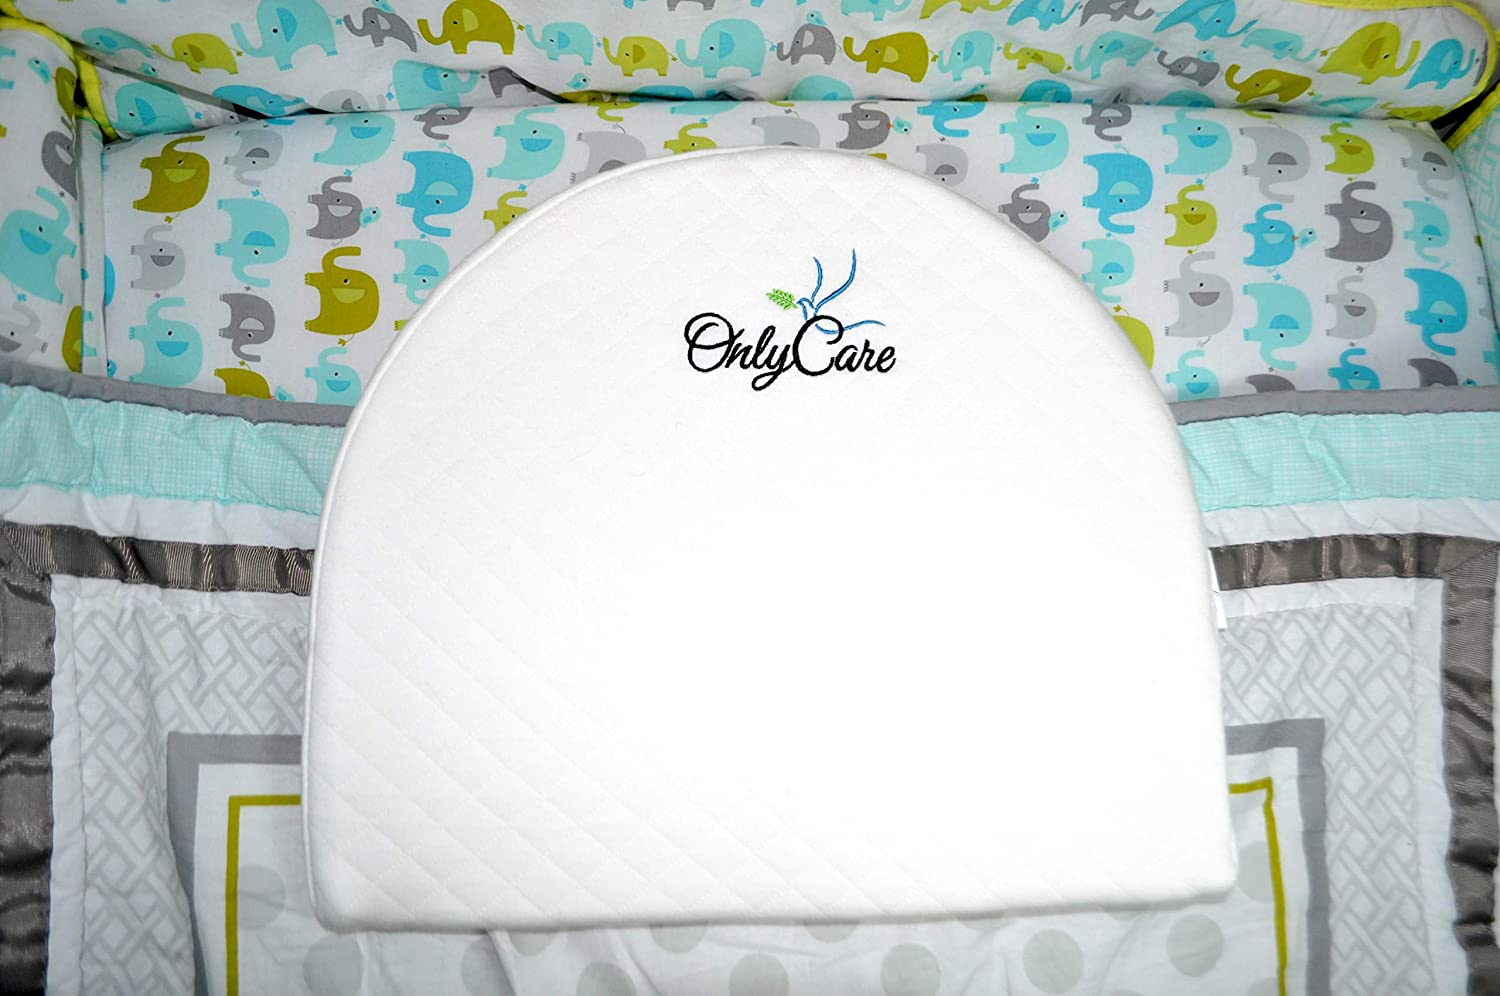 OnlyCare Baby Wedge Pillow